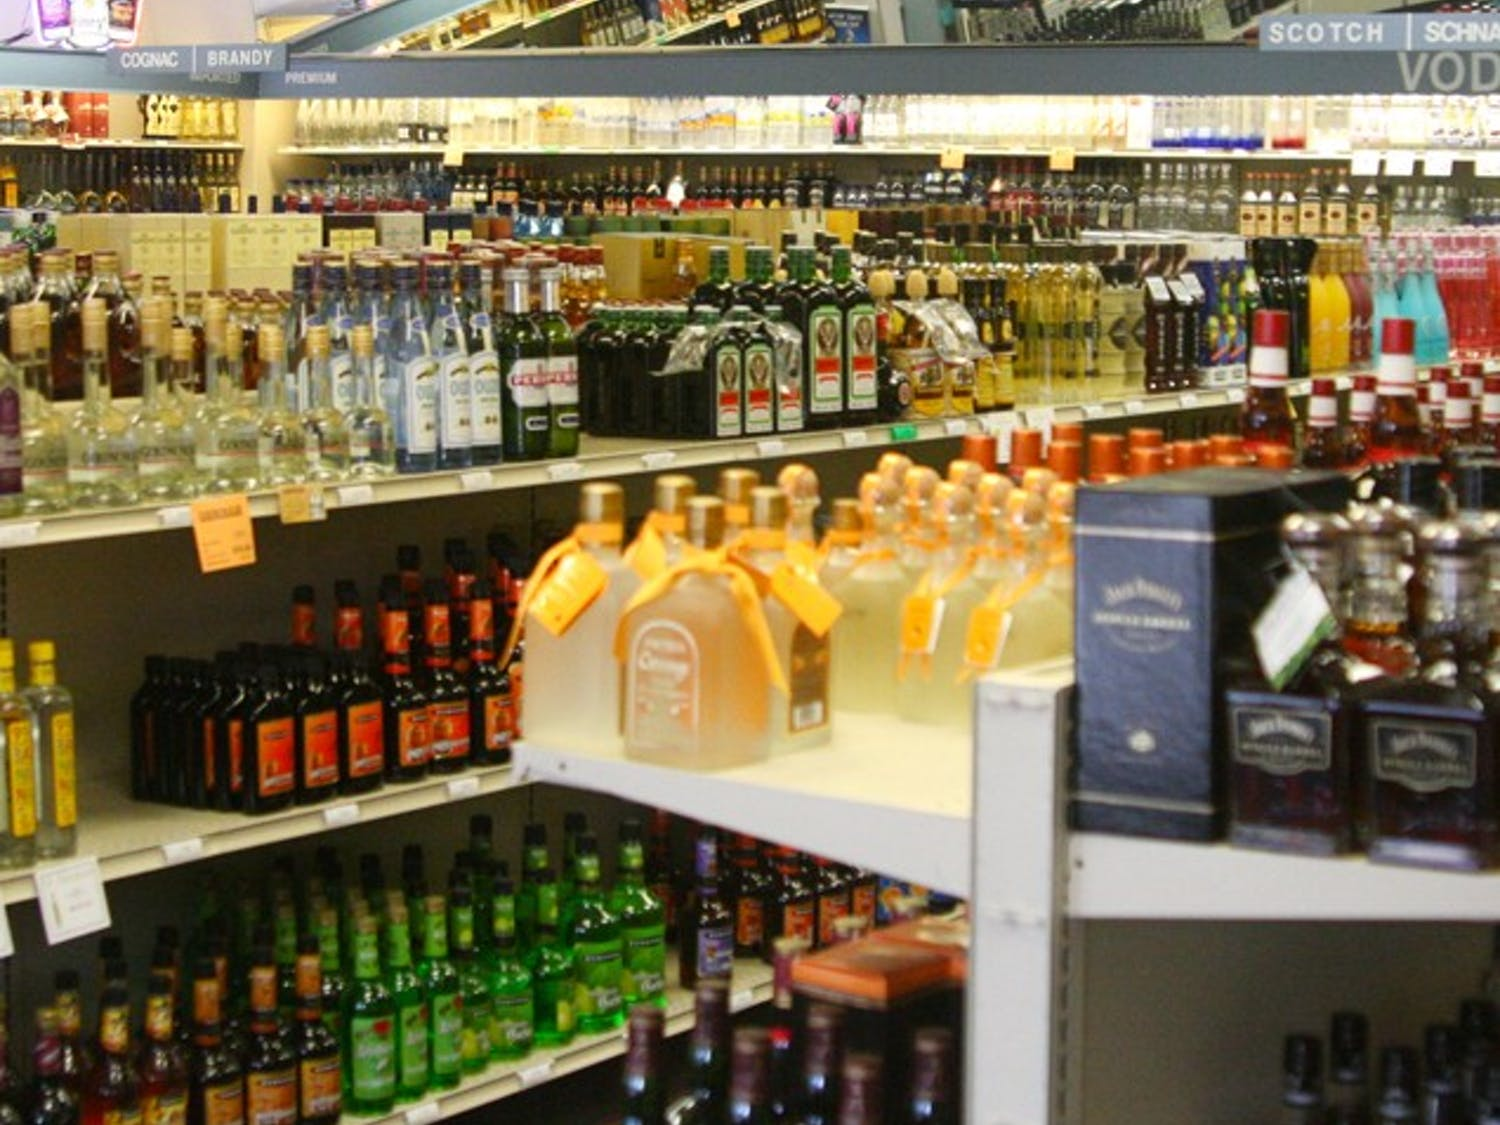 State governments have been responsible for regulating the sale and distribution of alcoholic beverages since Prohibition ended in 1933. While state governments regulate alcohol through one of two models - control or licensure - each individual system of regulation varies across states.